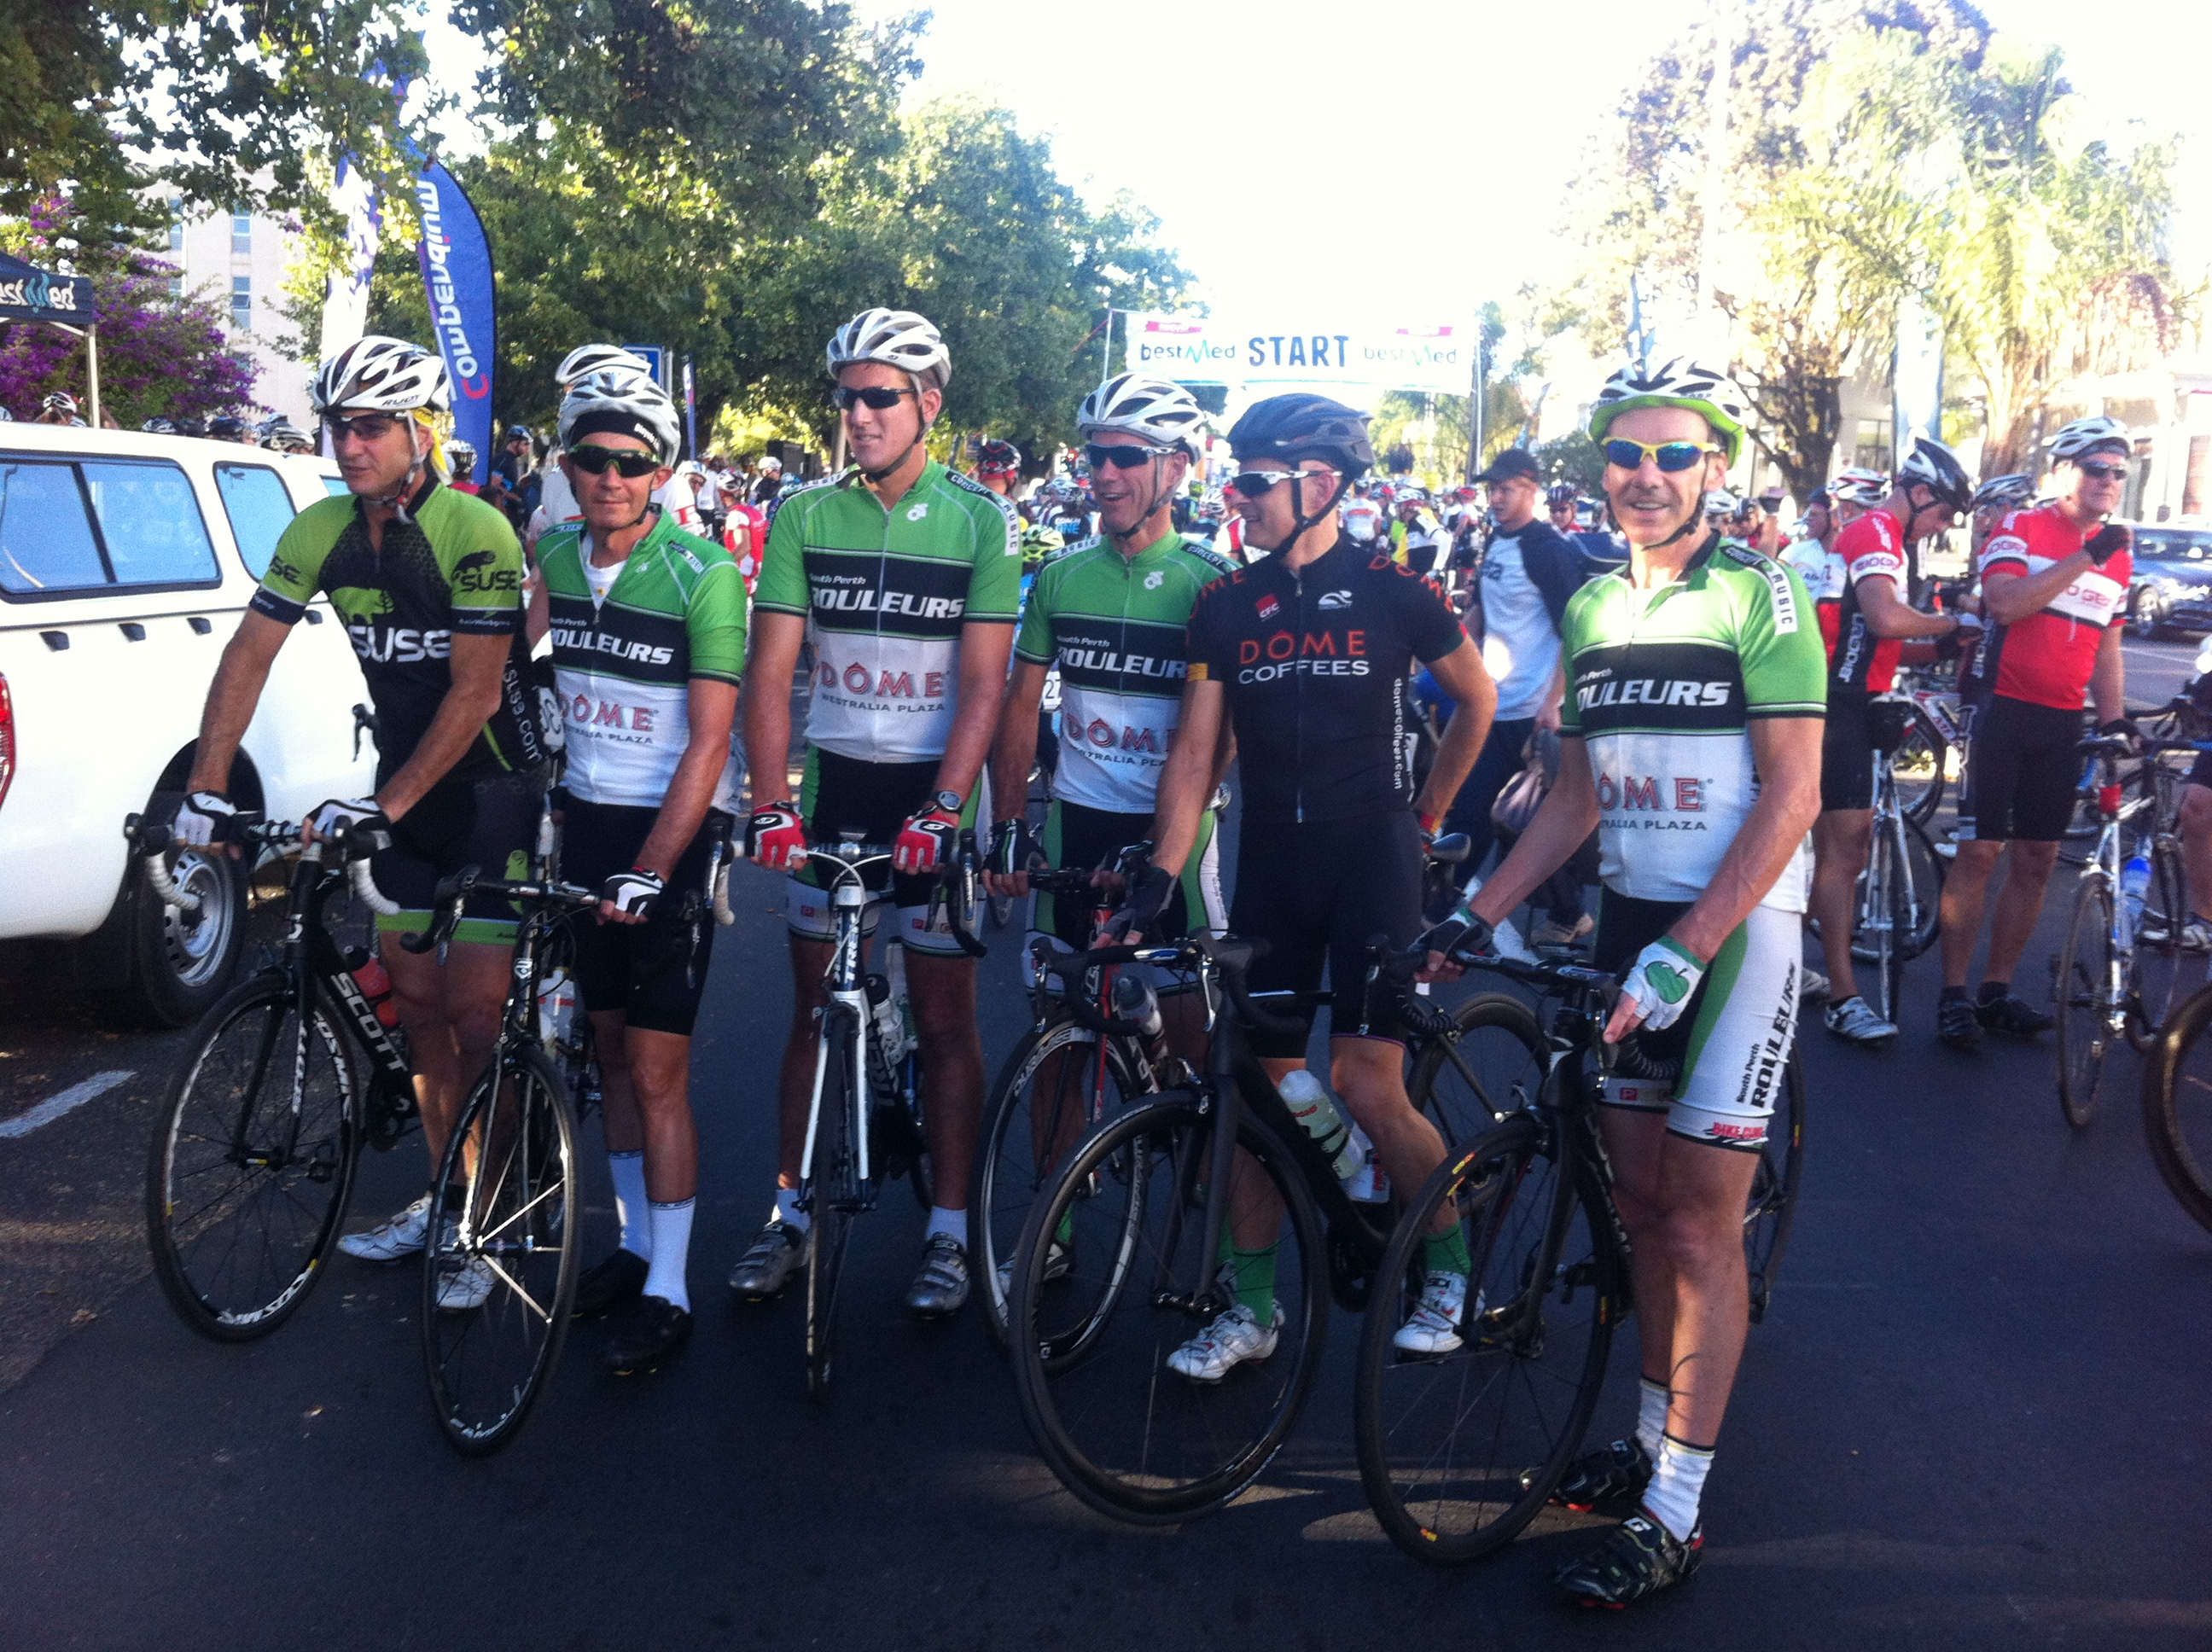 Team SPR + Bruno de Castro, starting line, D1 Tour de Boland